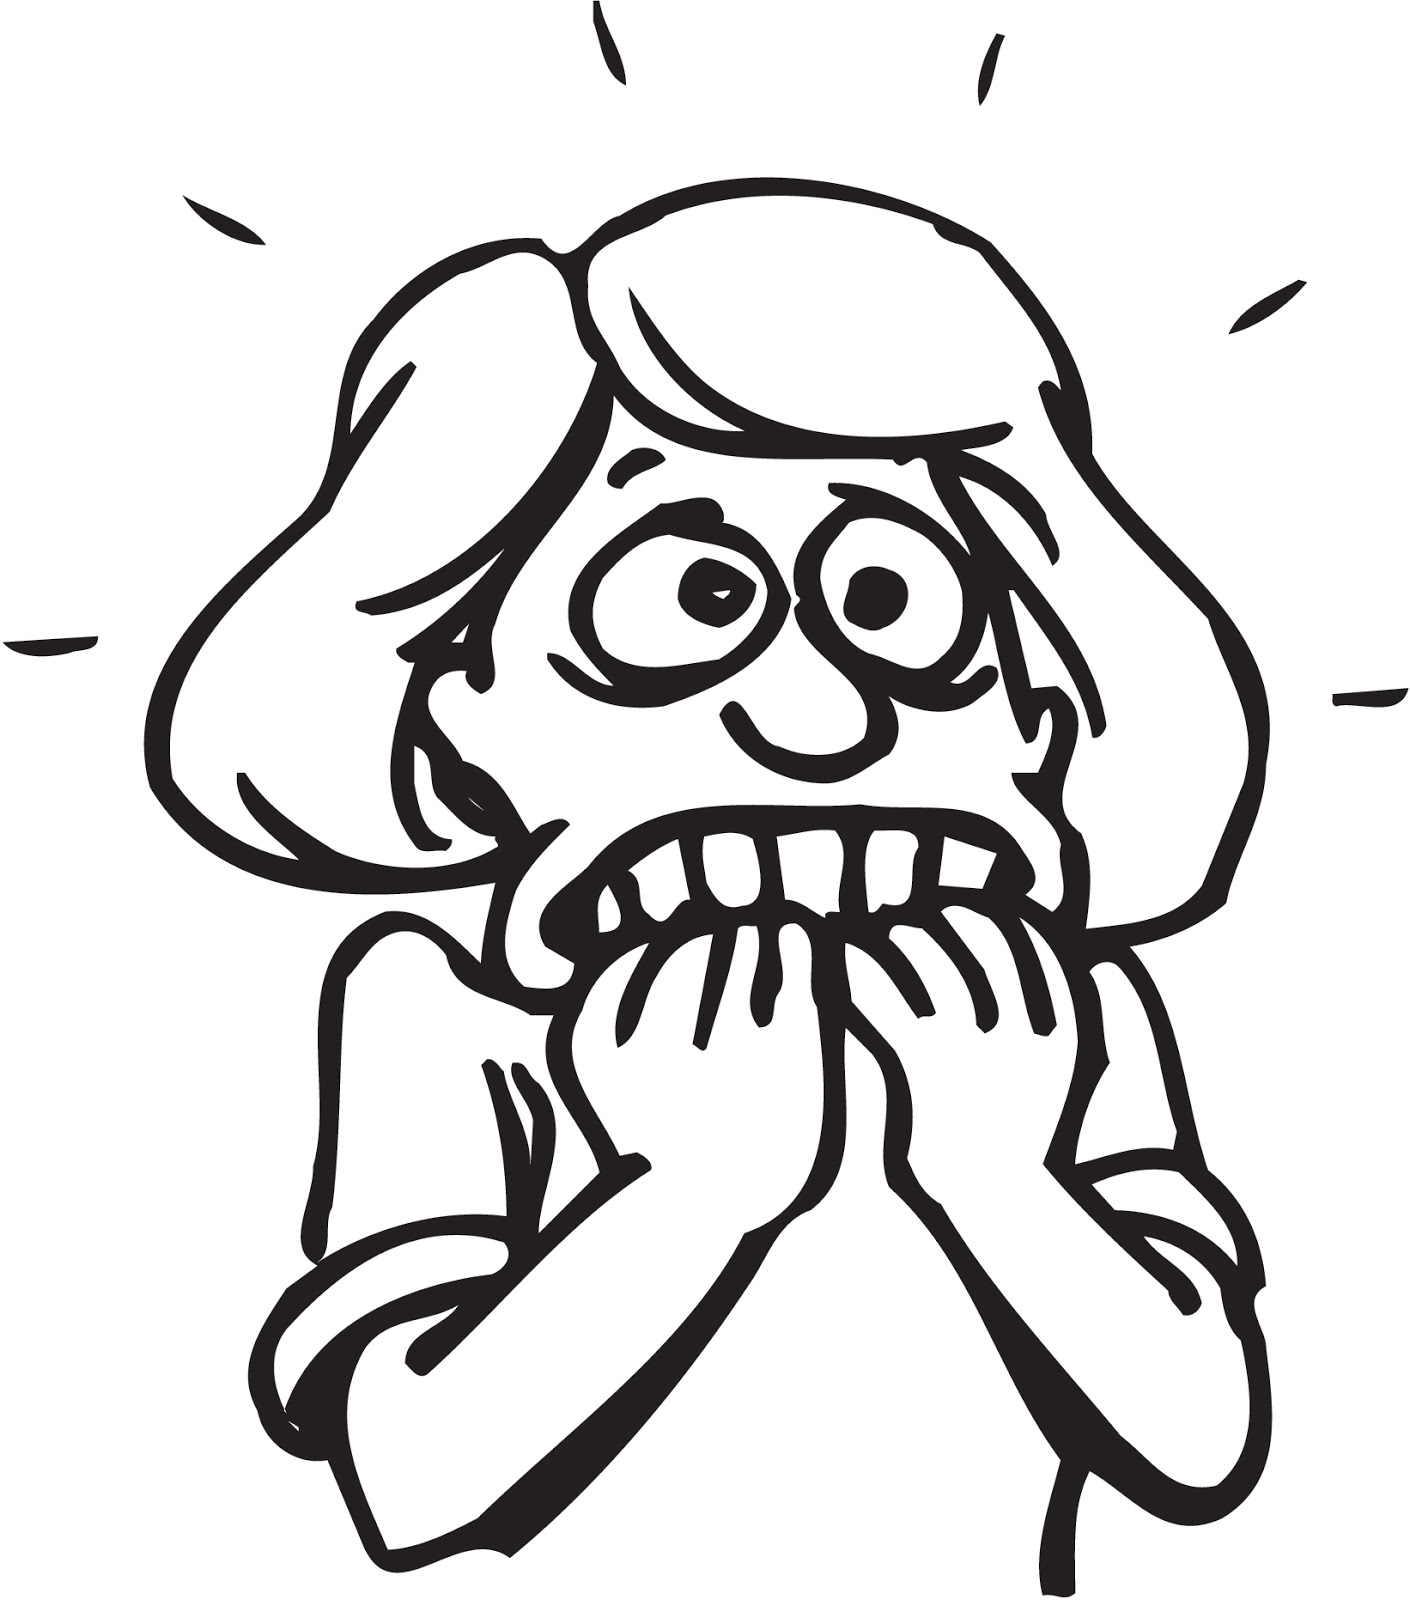 Black Woman Stressed Out Clipart - Clipart Suggest